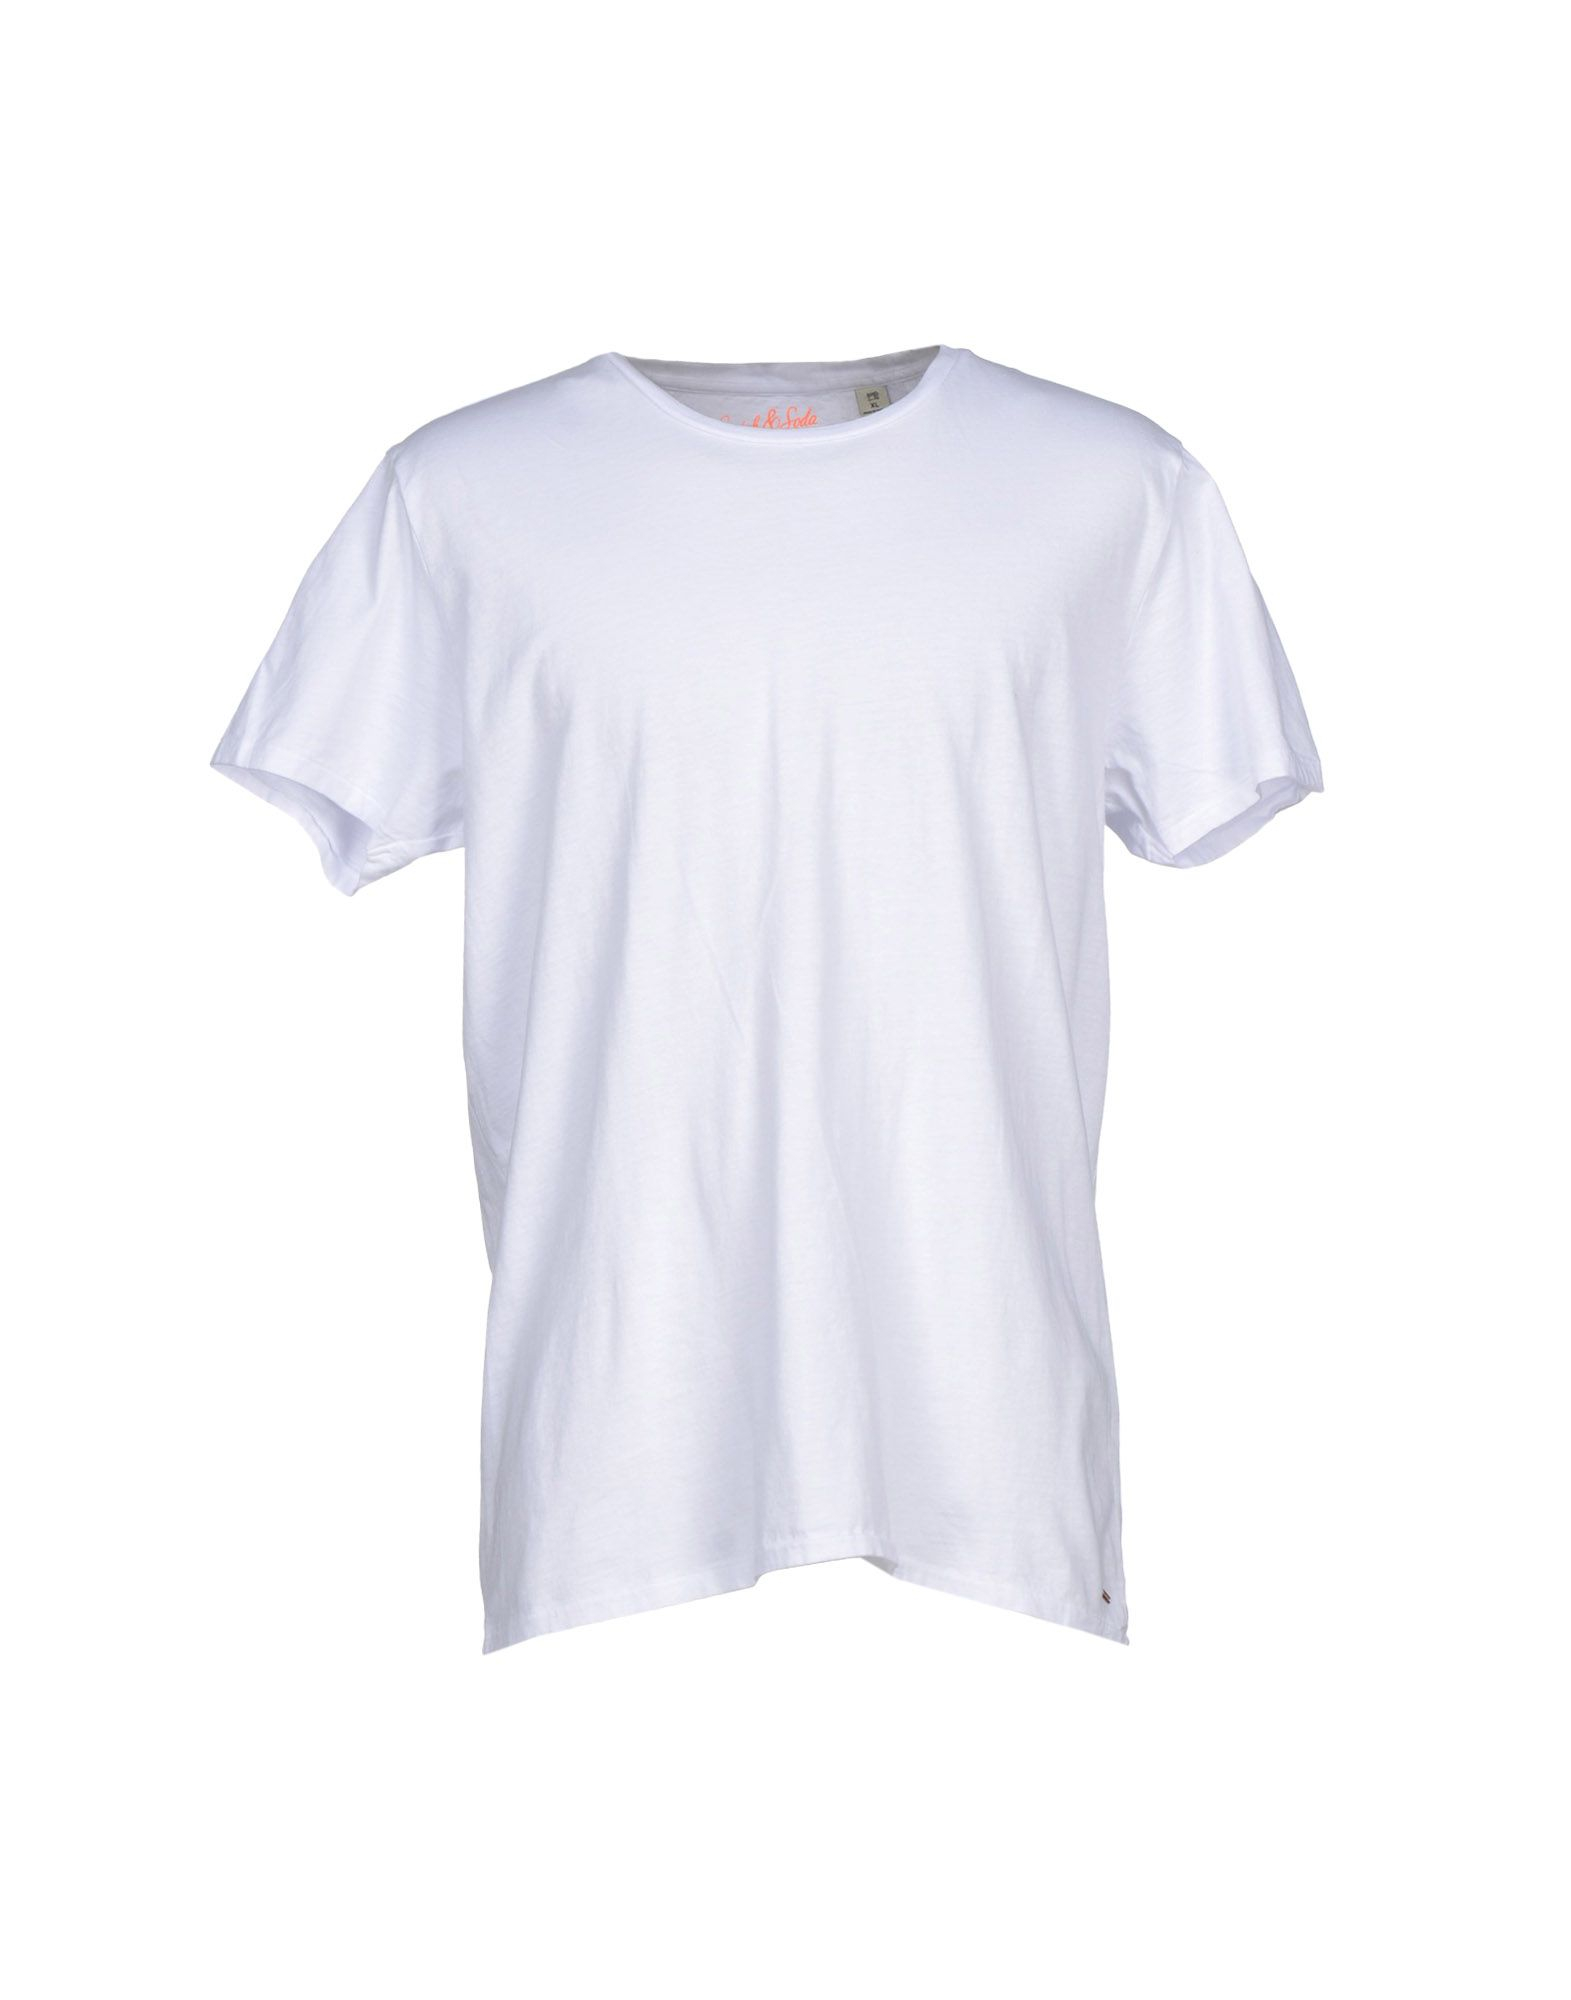 Lyst scotch soda t shirt in white for men for Lands end logo shirts